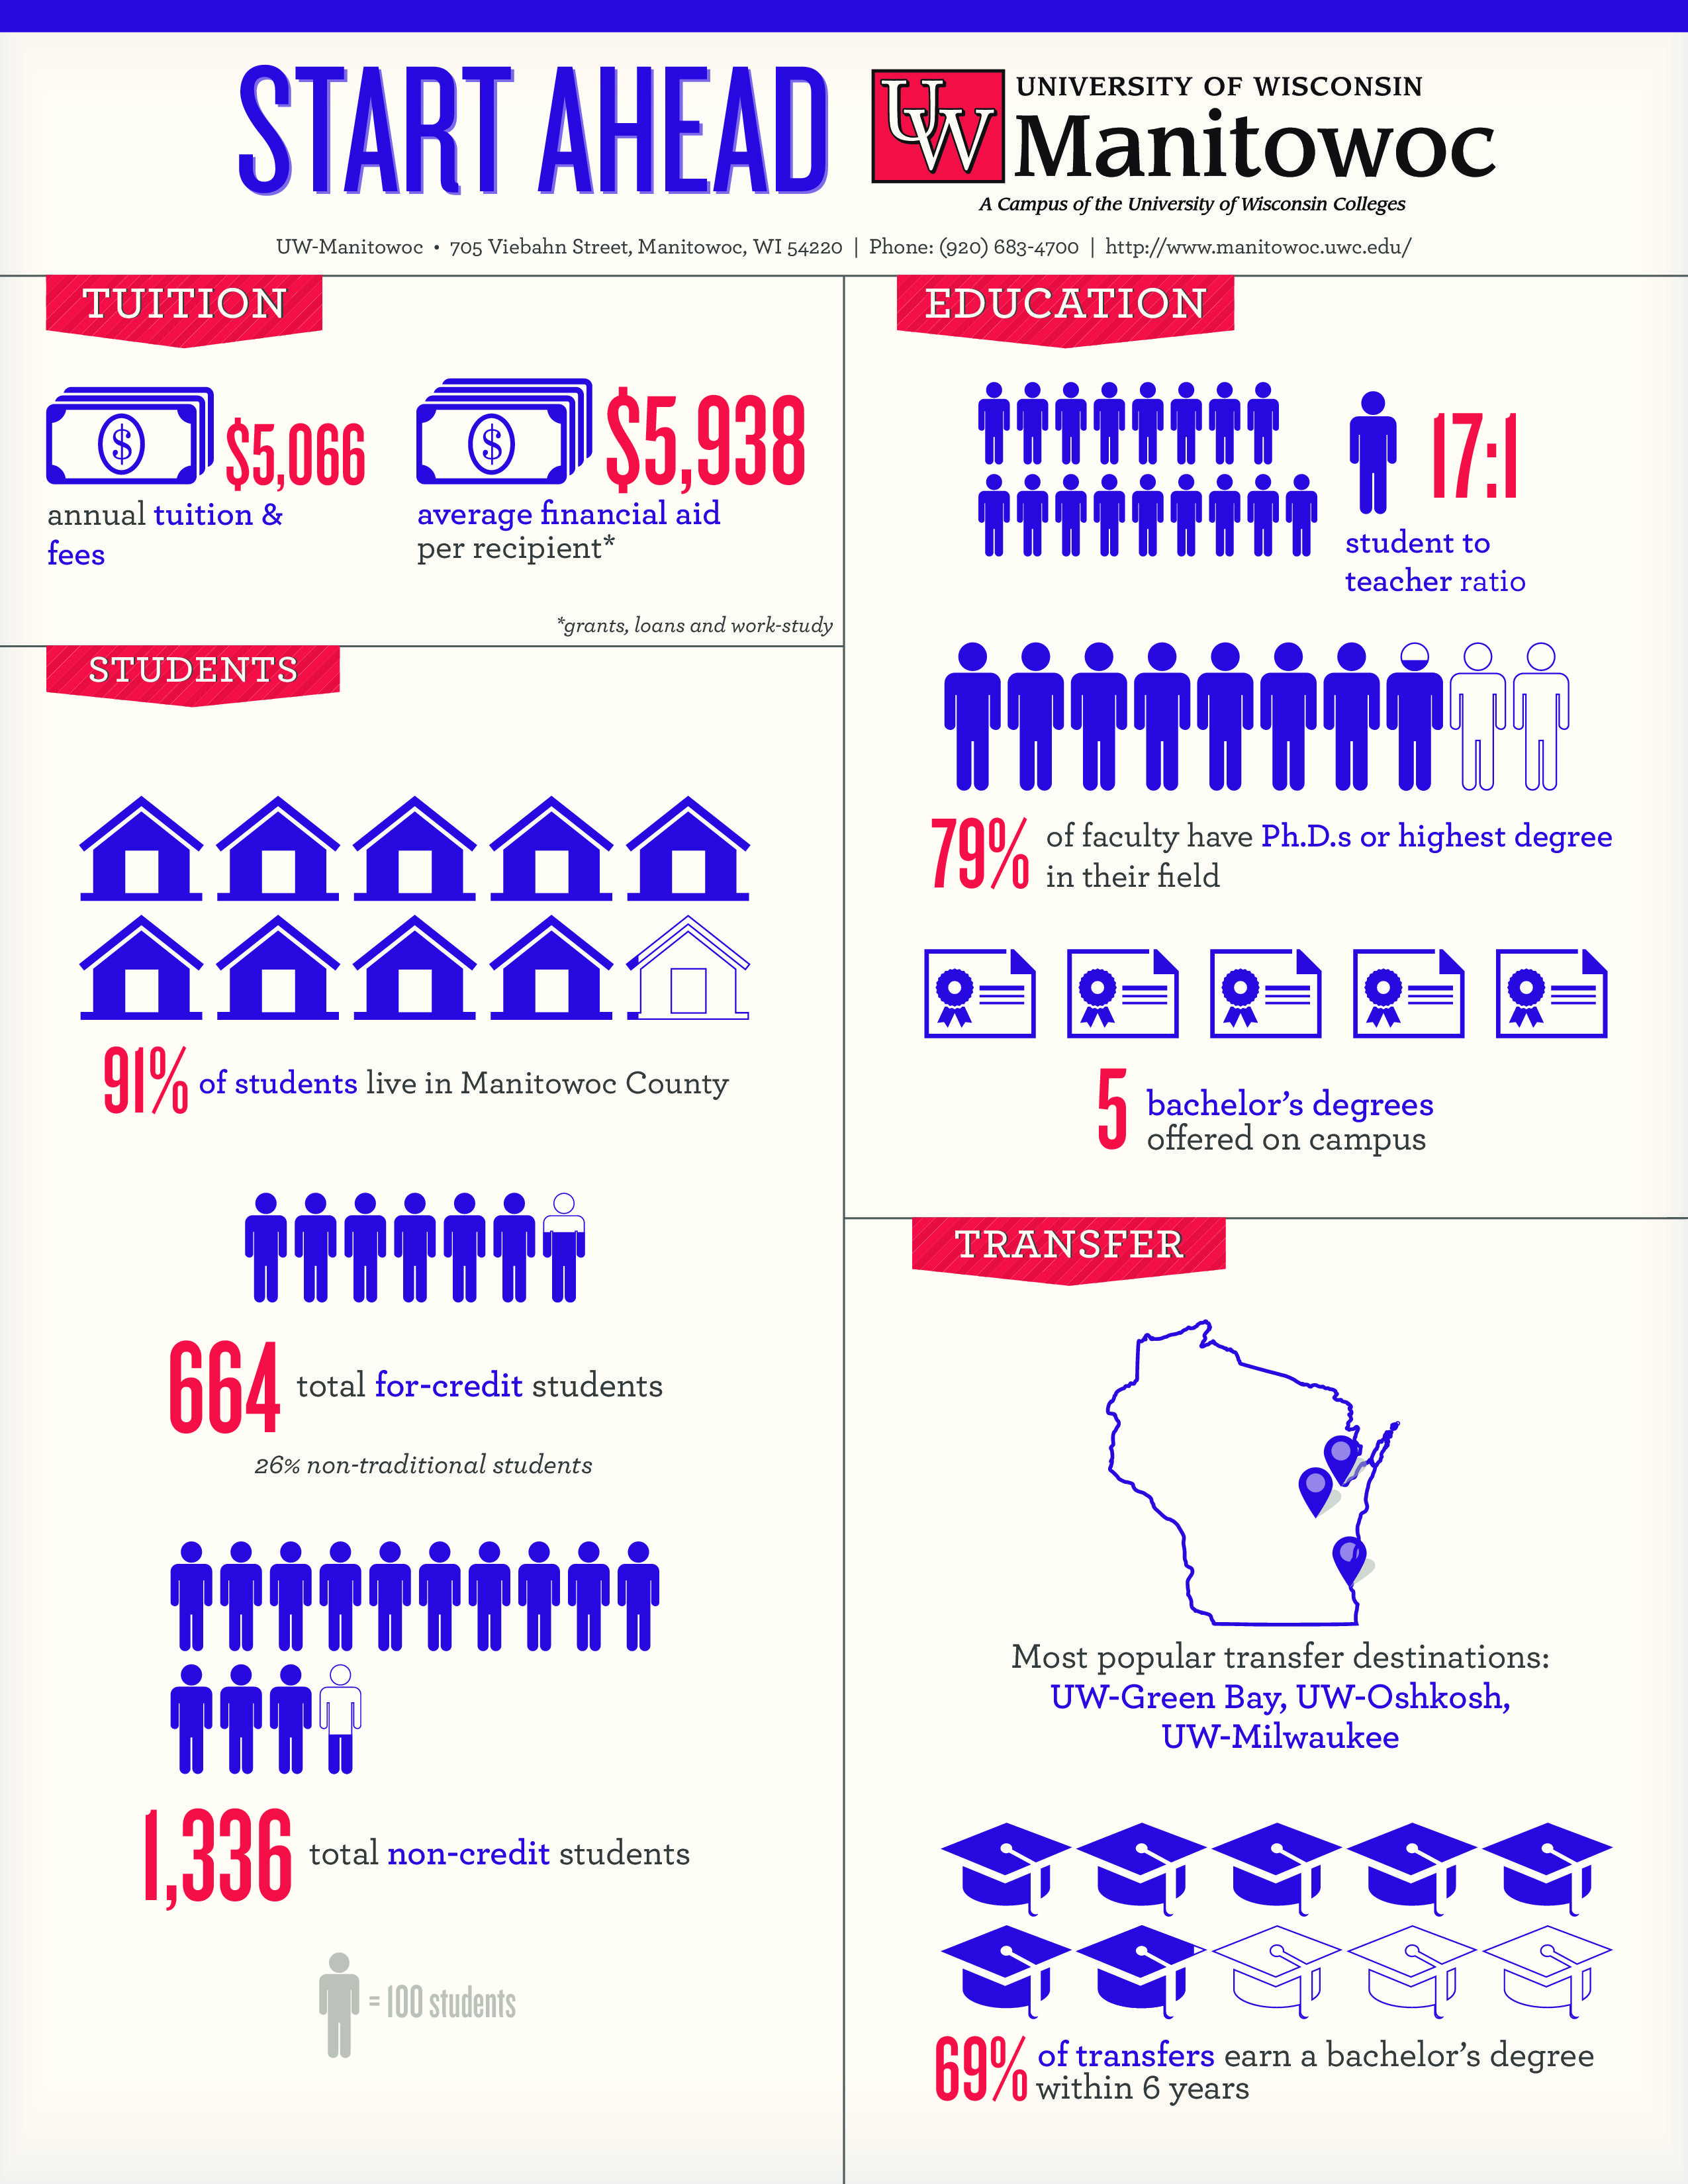 uw manitowoc infographic and fact sheet uw colleges infographic